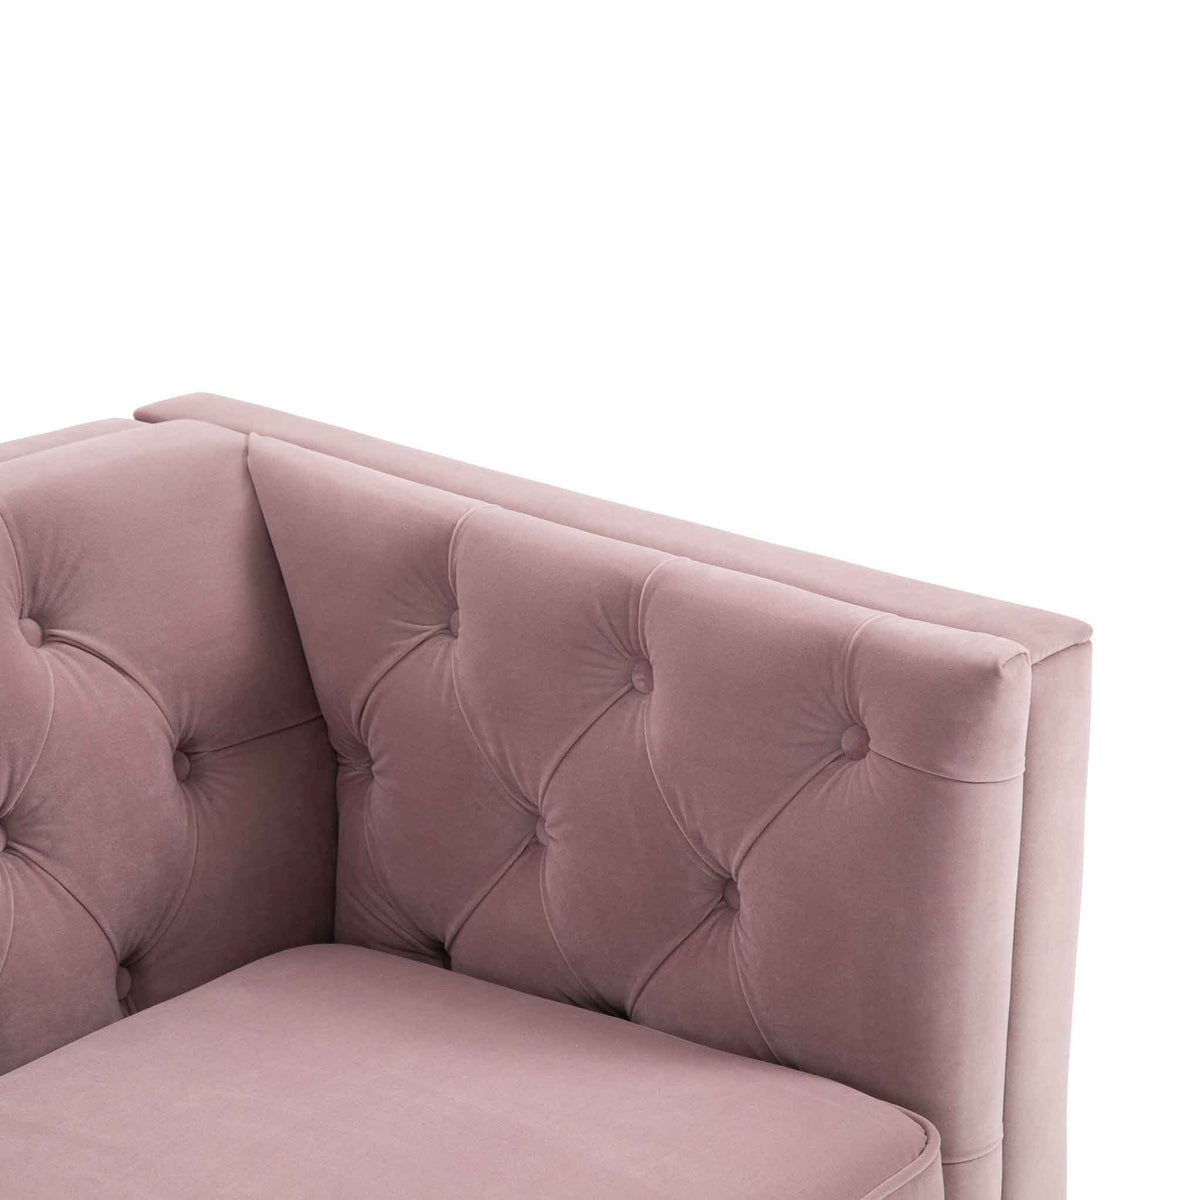 Eliza Heather 3 Seater Chesterfield Sofa - Close up of arm rest and cushion